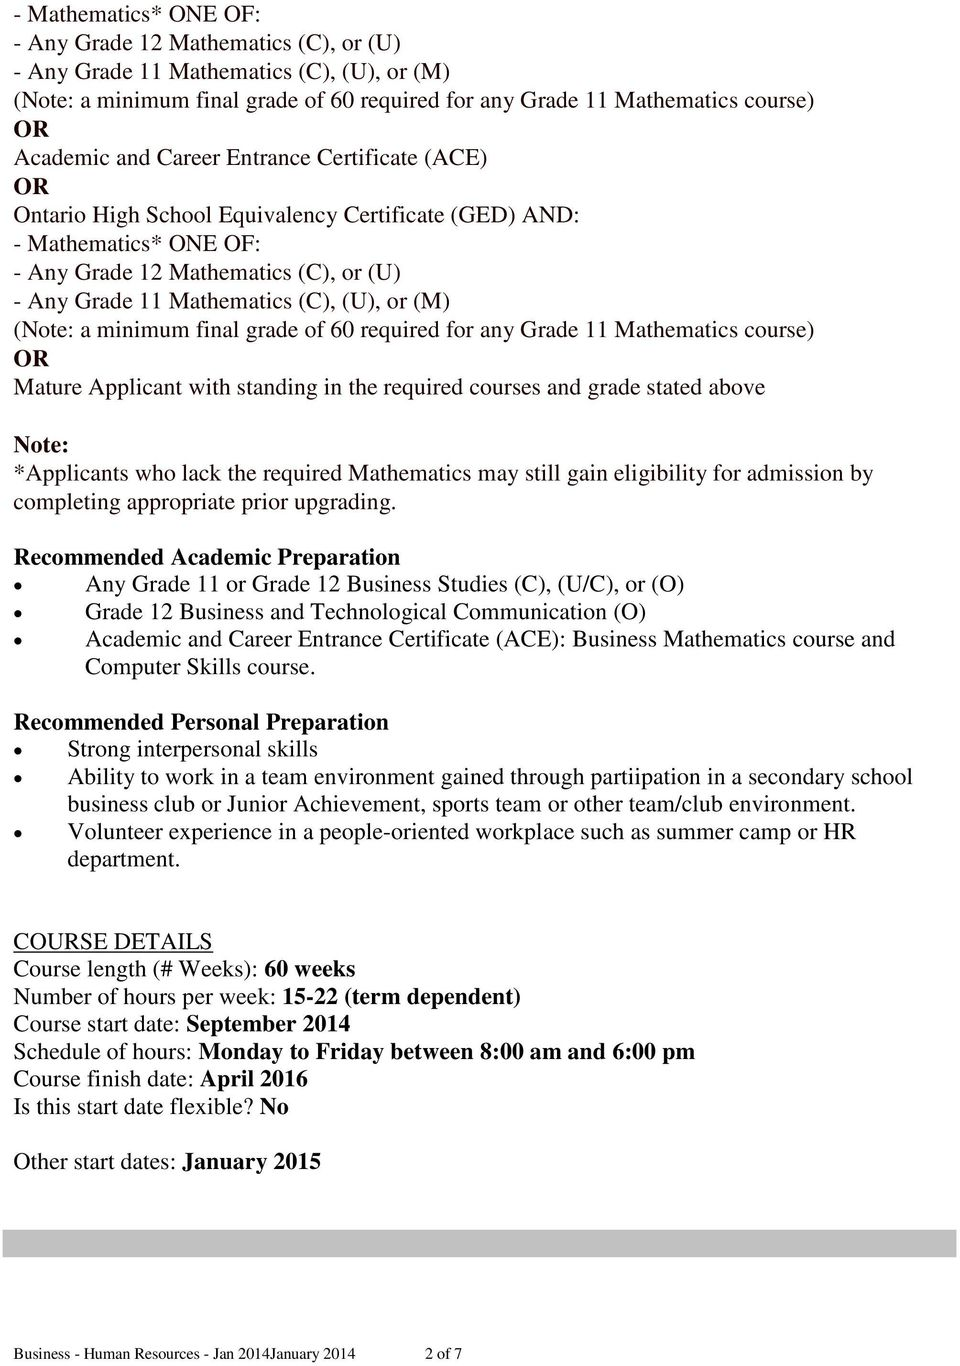 (M) (Note: a minimum final grade of 60 required for any Grade 11 Mathematics course) OR Mature Applicant with standing in the required courses and grade stated above Note: *Applicants who lack the